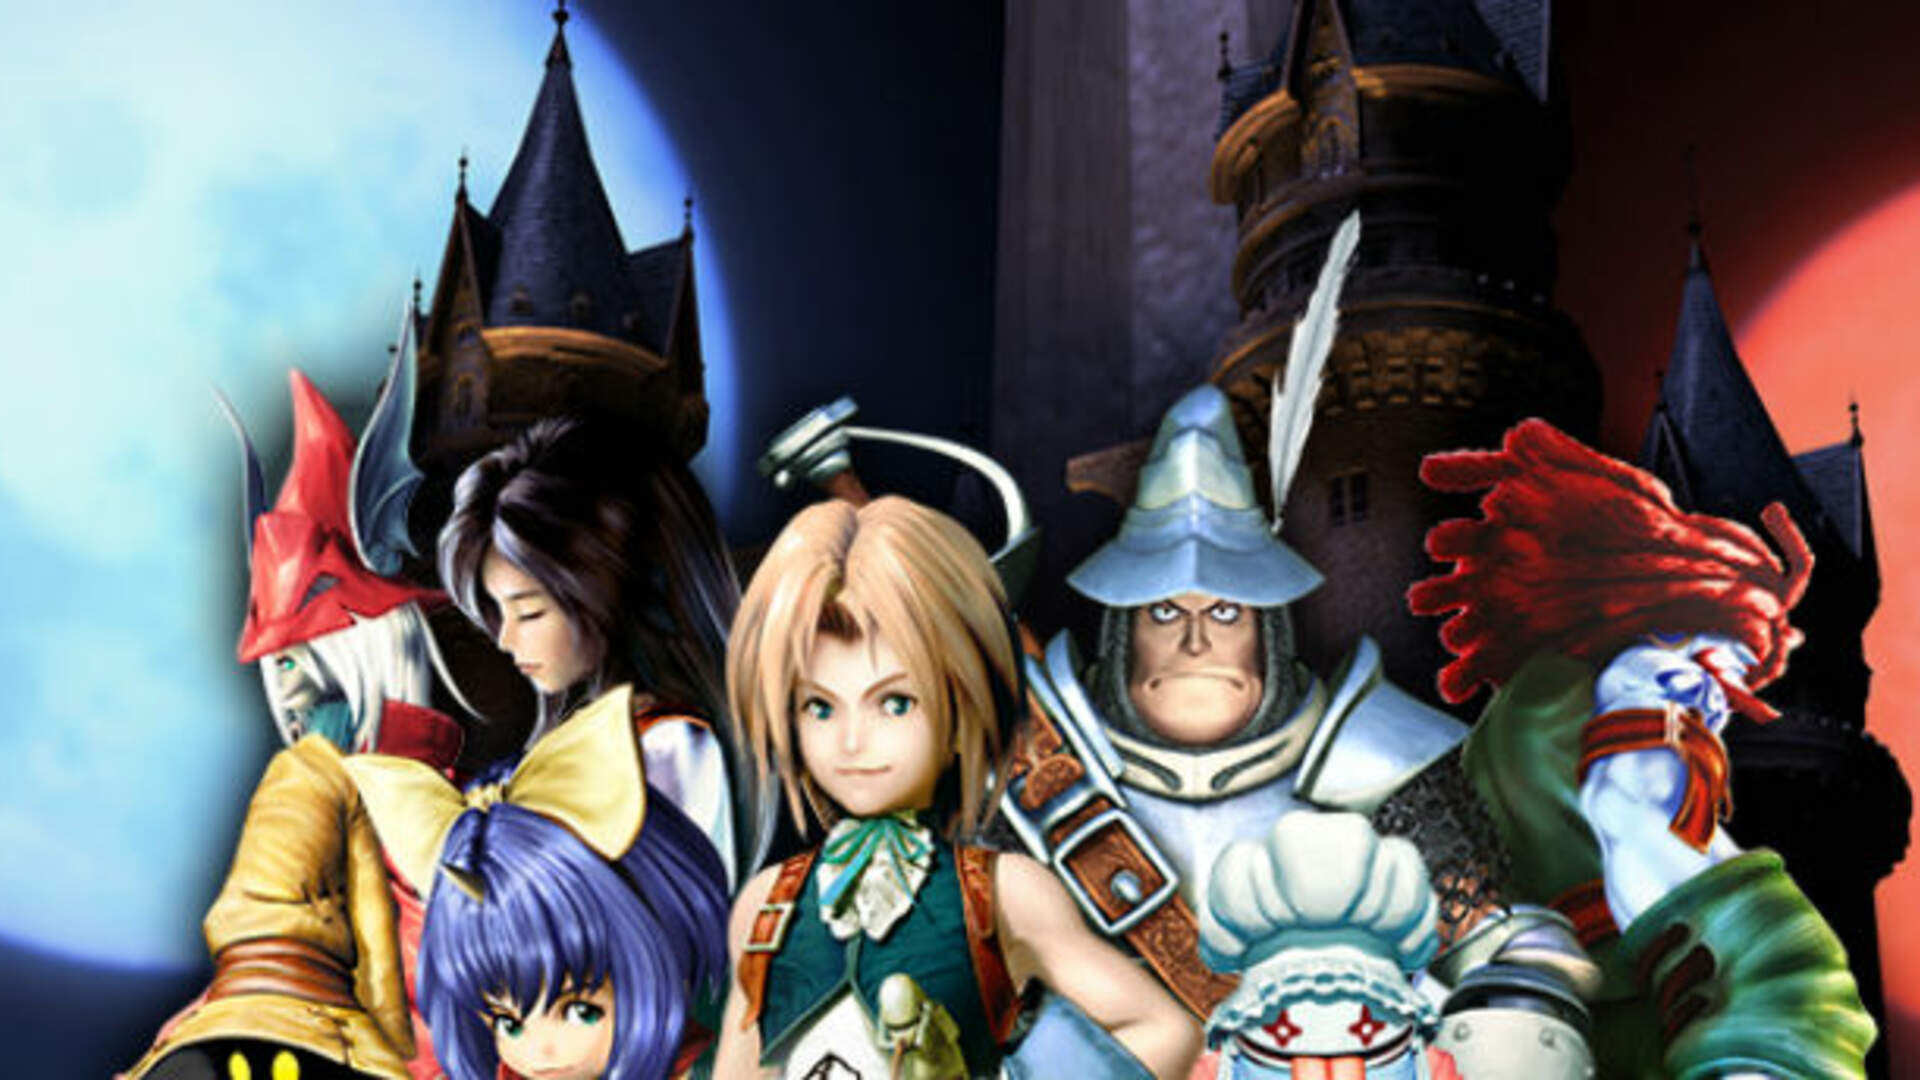 The Written Final Fantasy IX Report: Ahead On Our Way